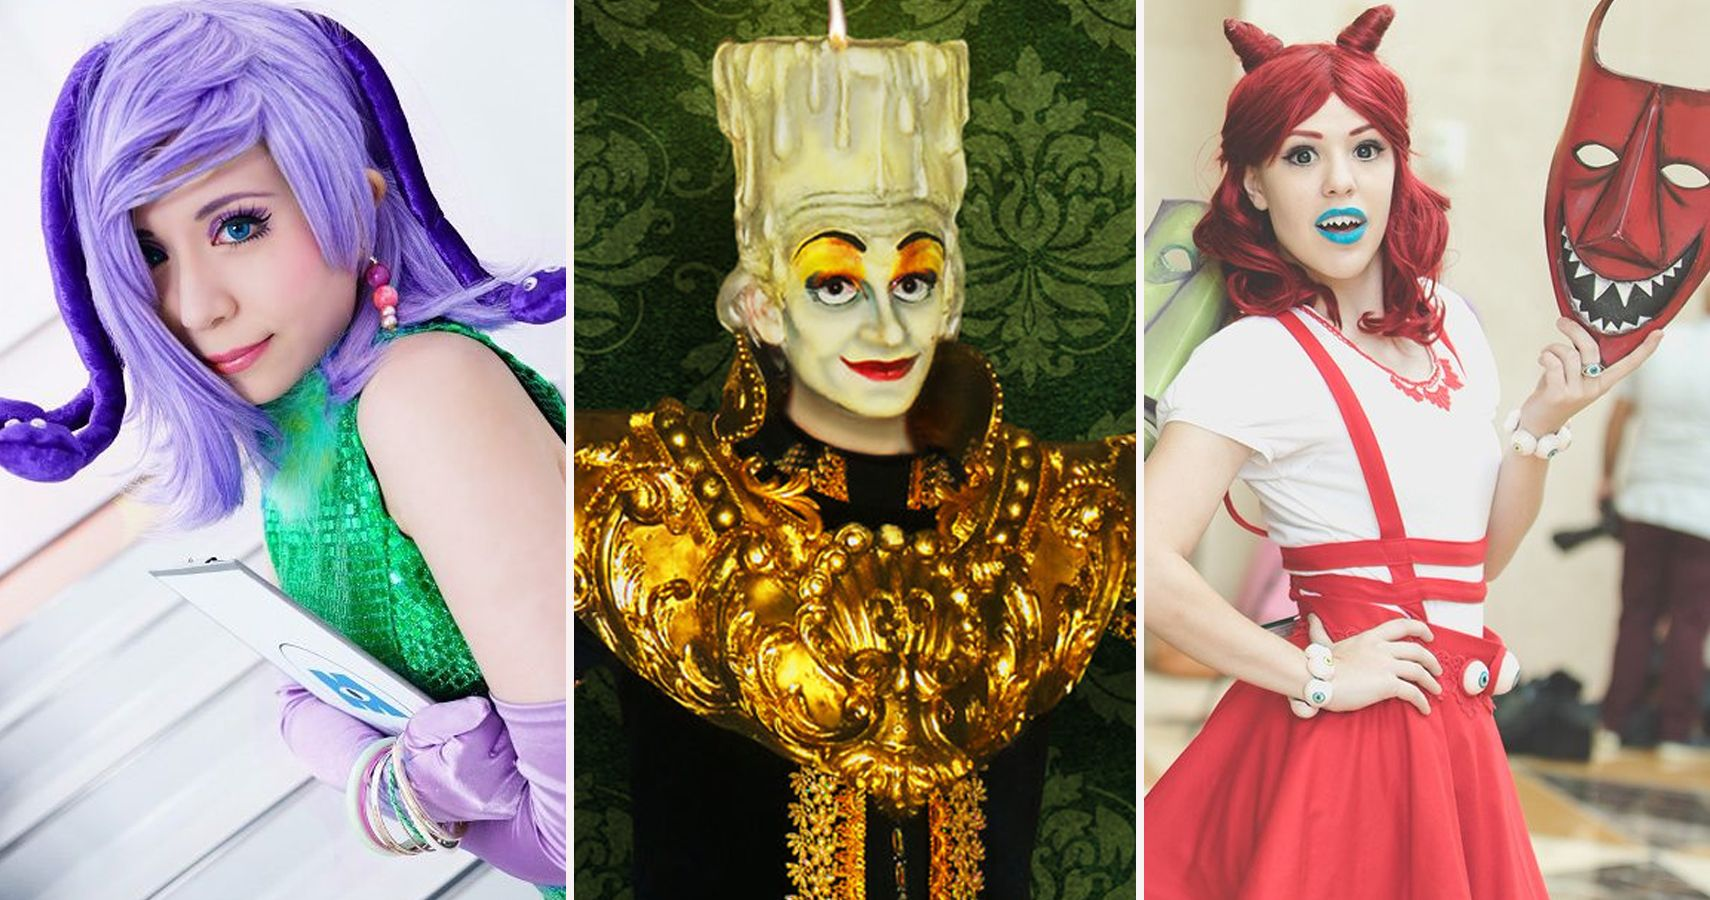 20Examples ofCosplay That Are Even Better Than the Original 20Examples ofCosplay That Are Even Better Than the Original new photo